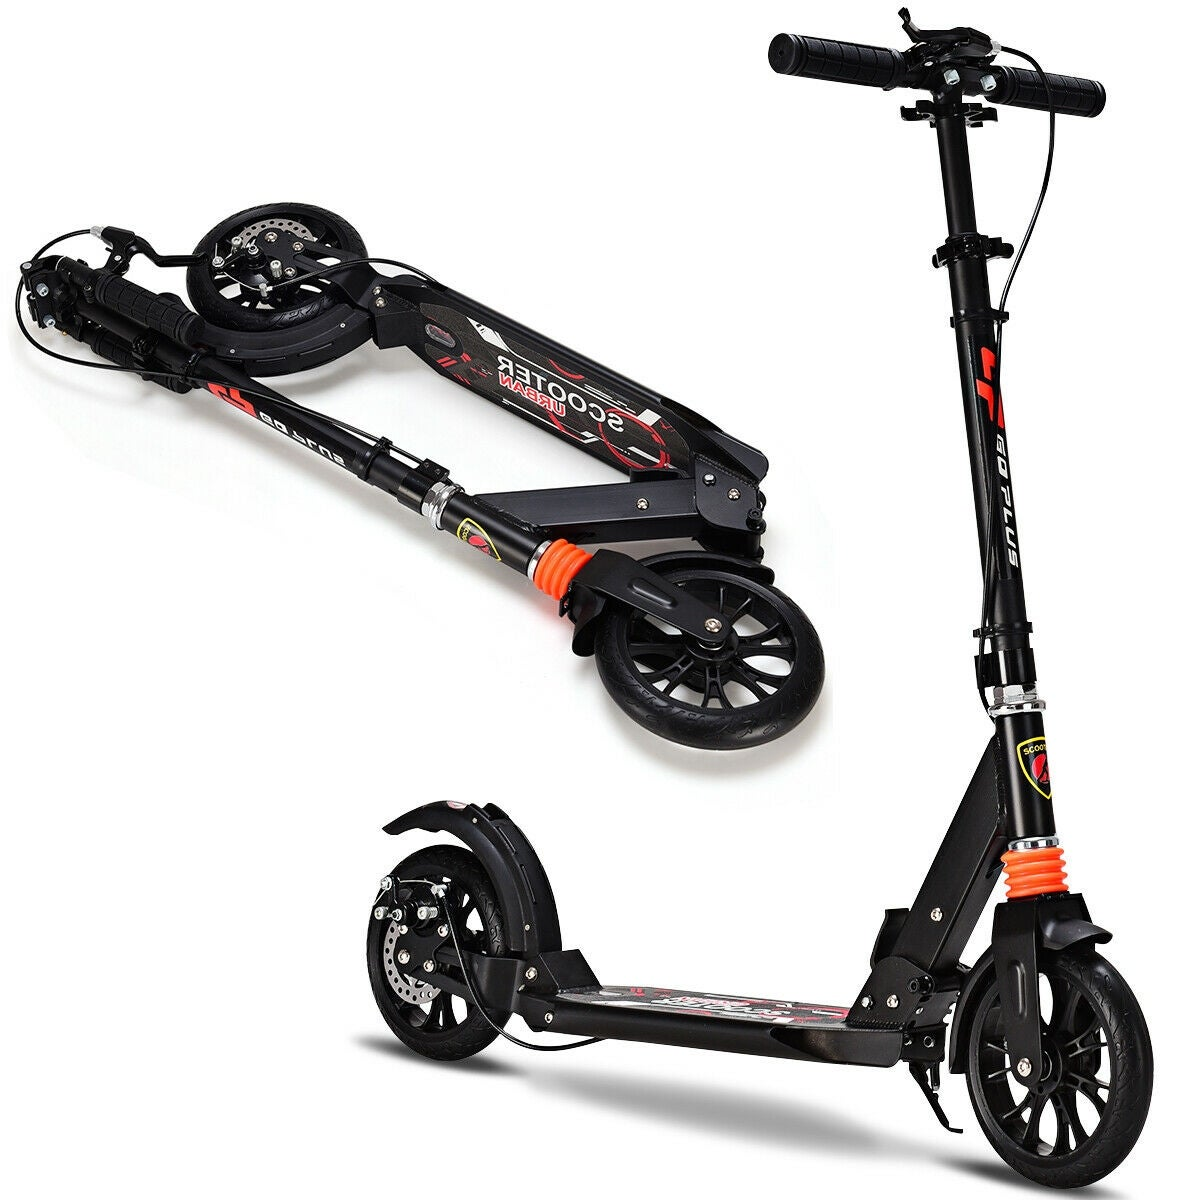 Adult Foldable Kick Scooter Adjustable Height Suspension Scooter Rear Suspension